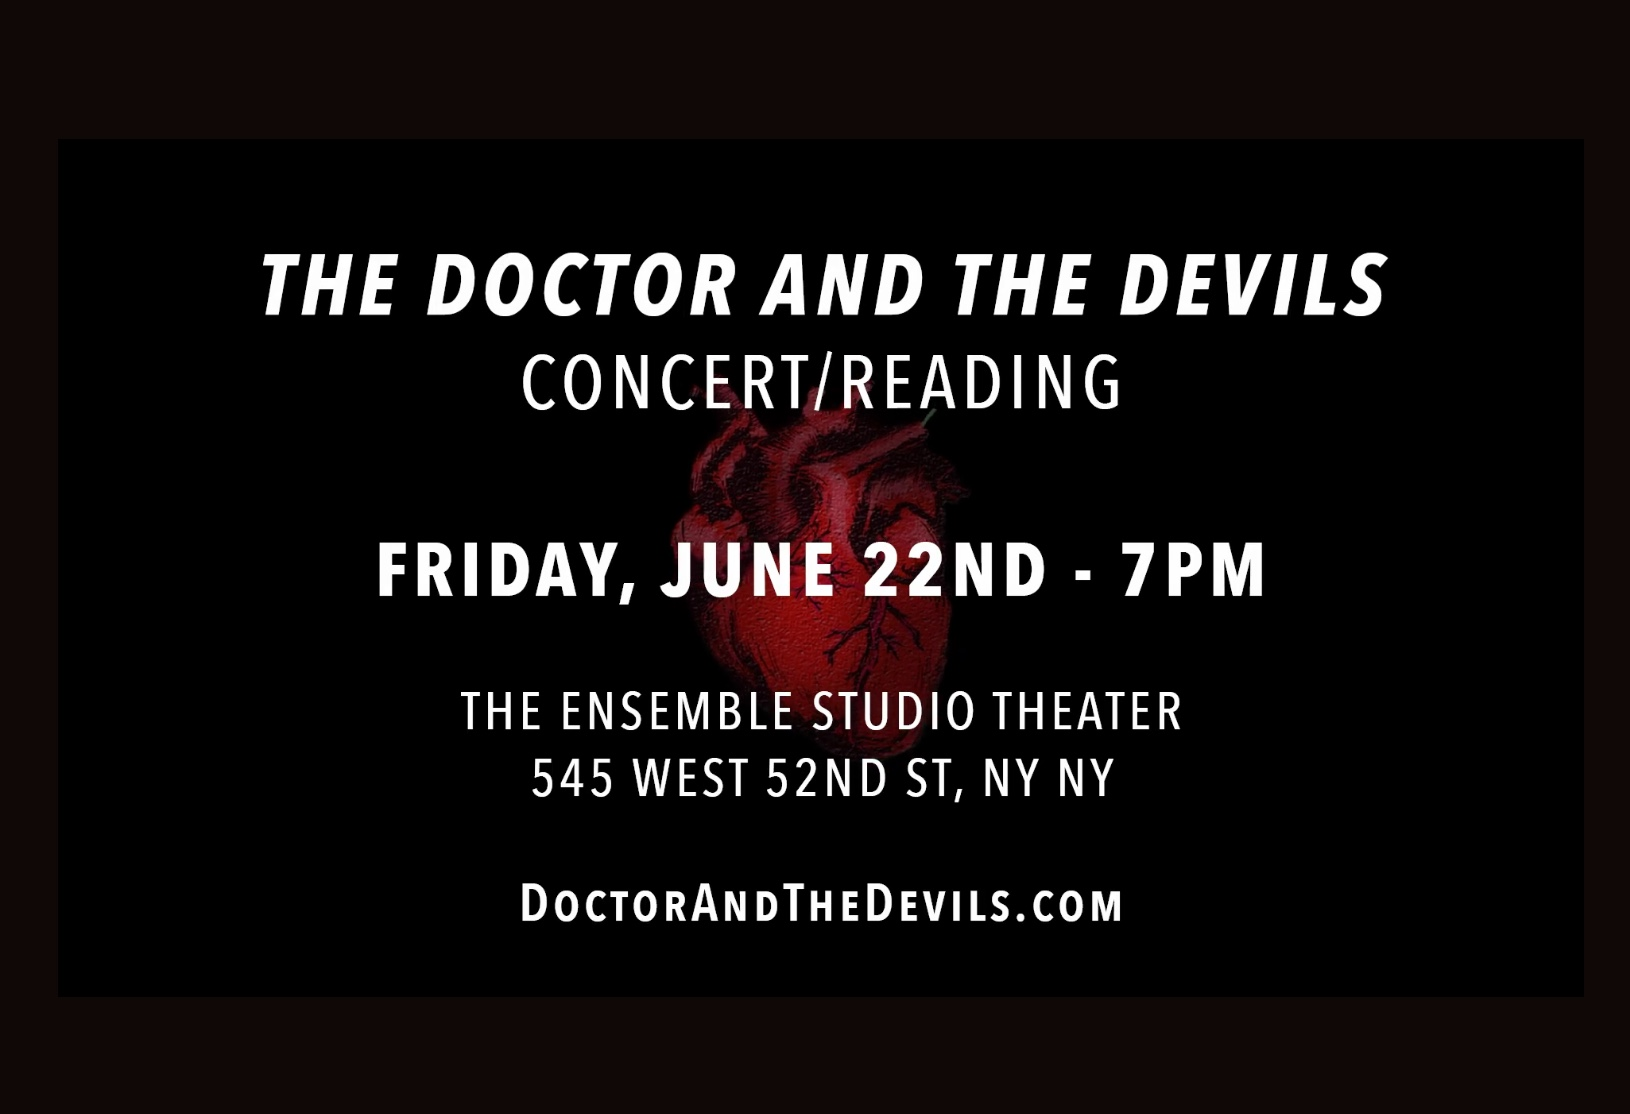 """I created, apadpted and produced """"The Doctor and the Devils"""", by Dylan Thomas. I'll also be performing in the concert/reading on June 22nd. See my PROJECTS page for more information."""